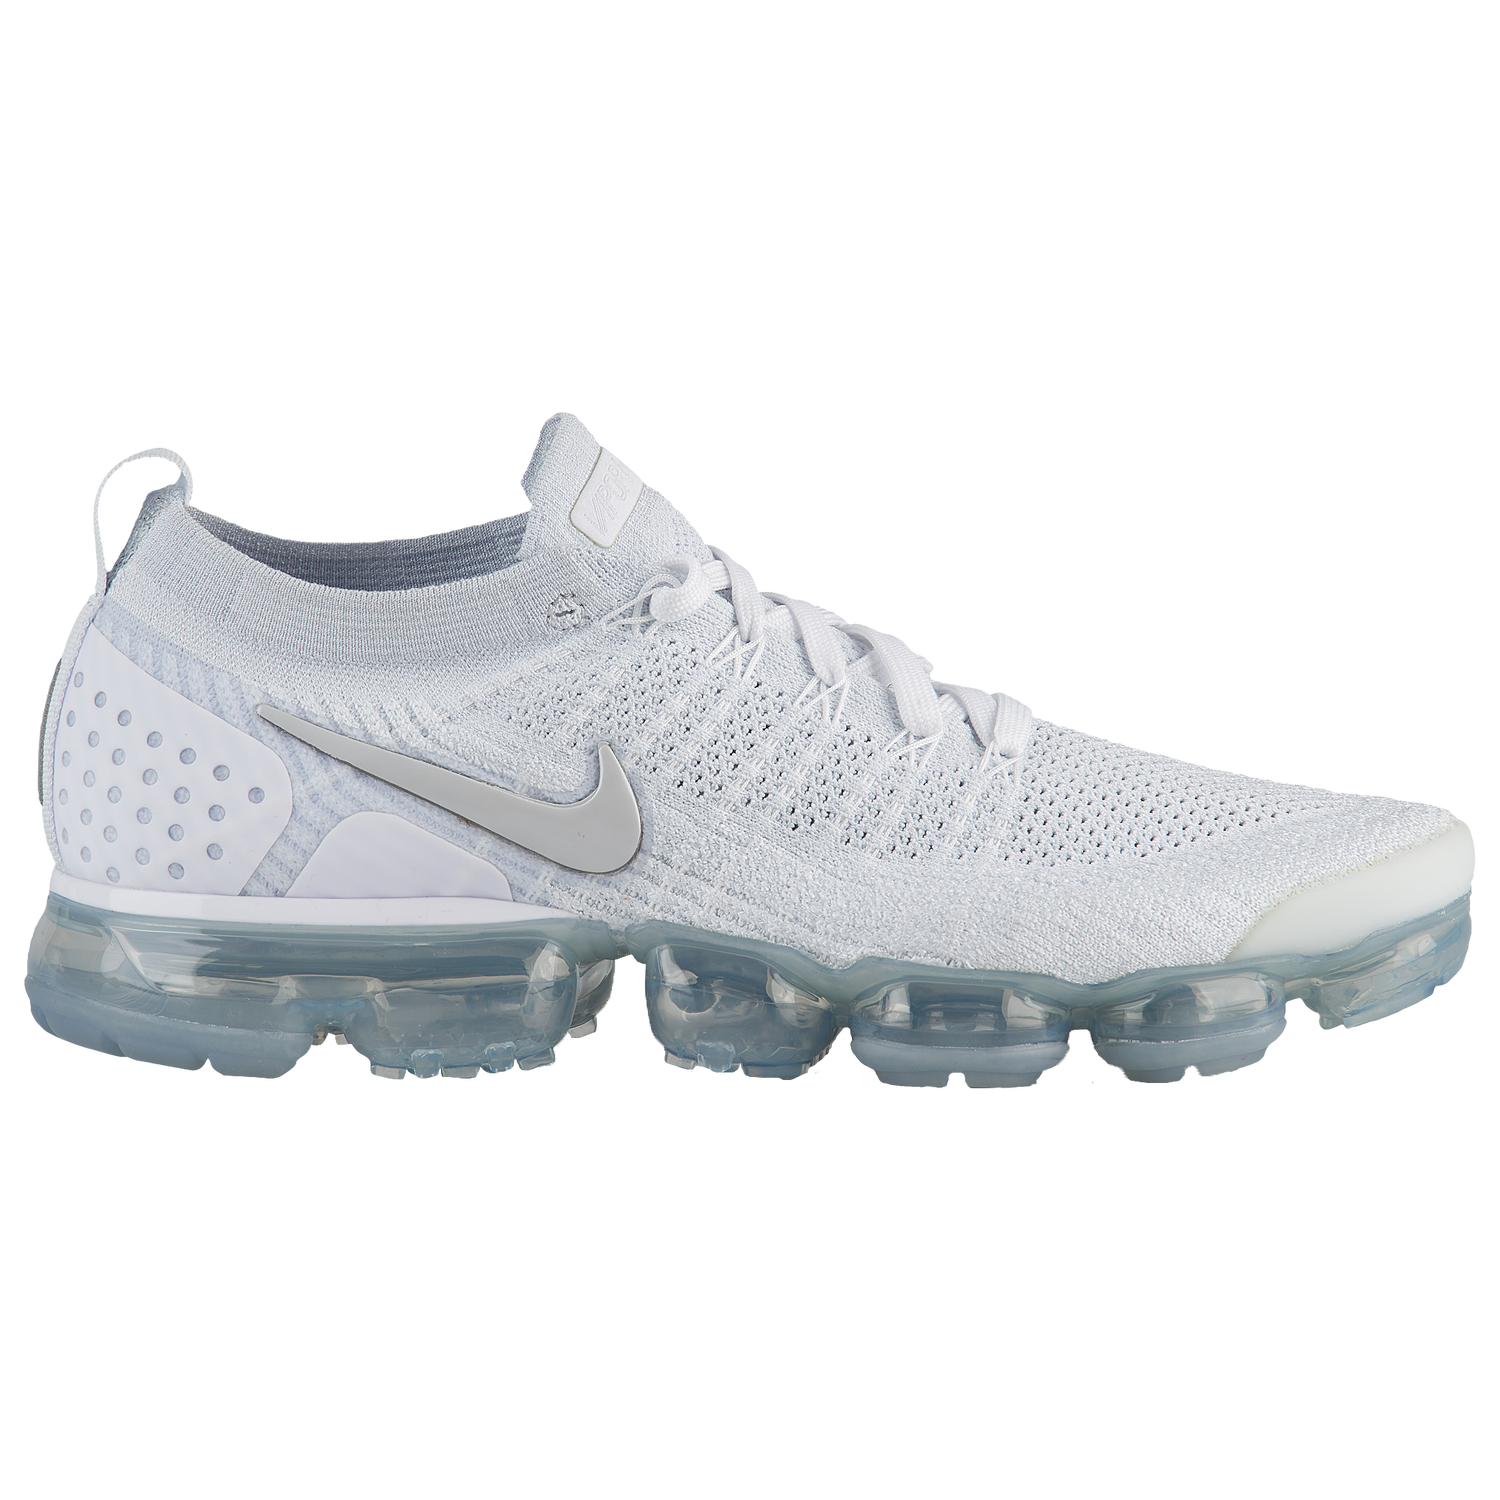 72139b5d11 inexpensive nike flyknit air vapormax user guide value 076f3 711f1